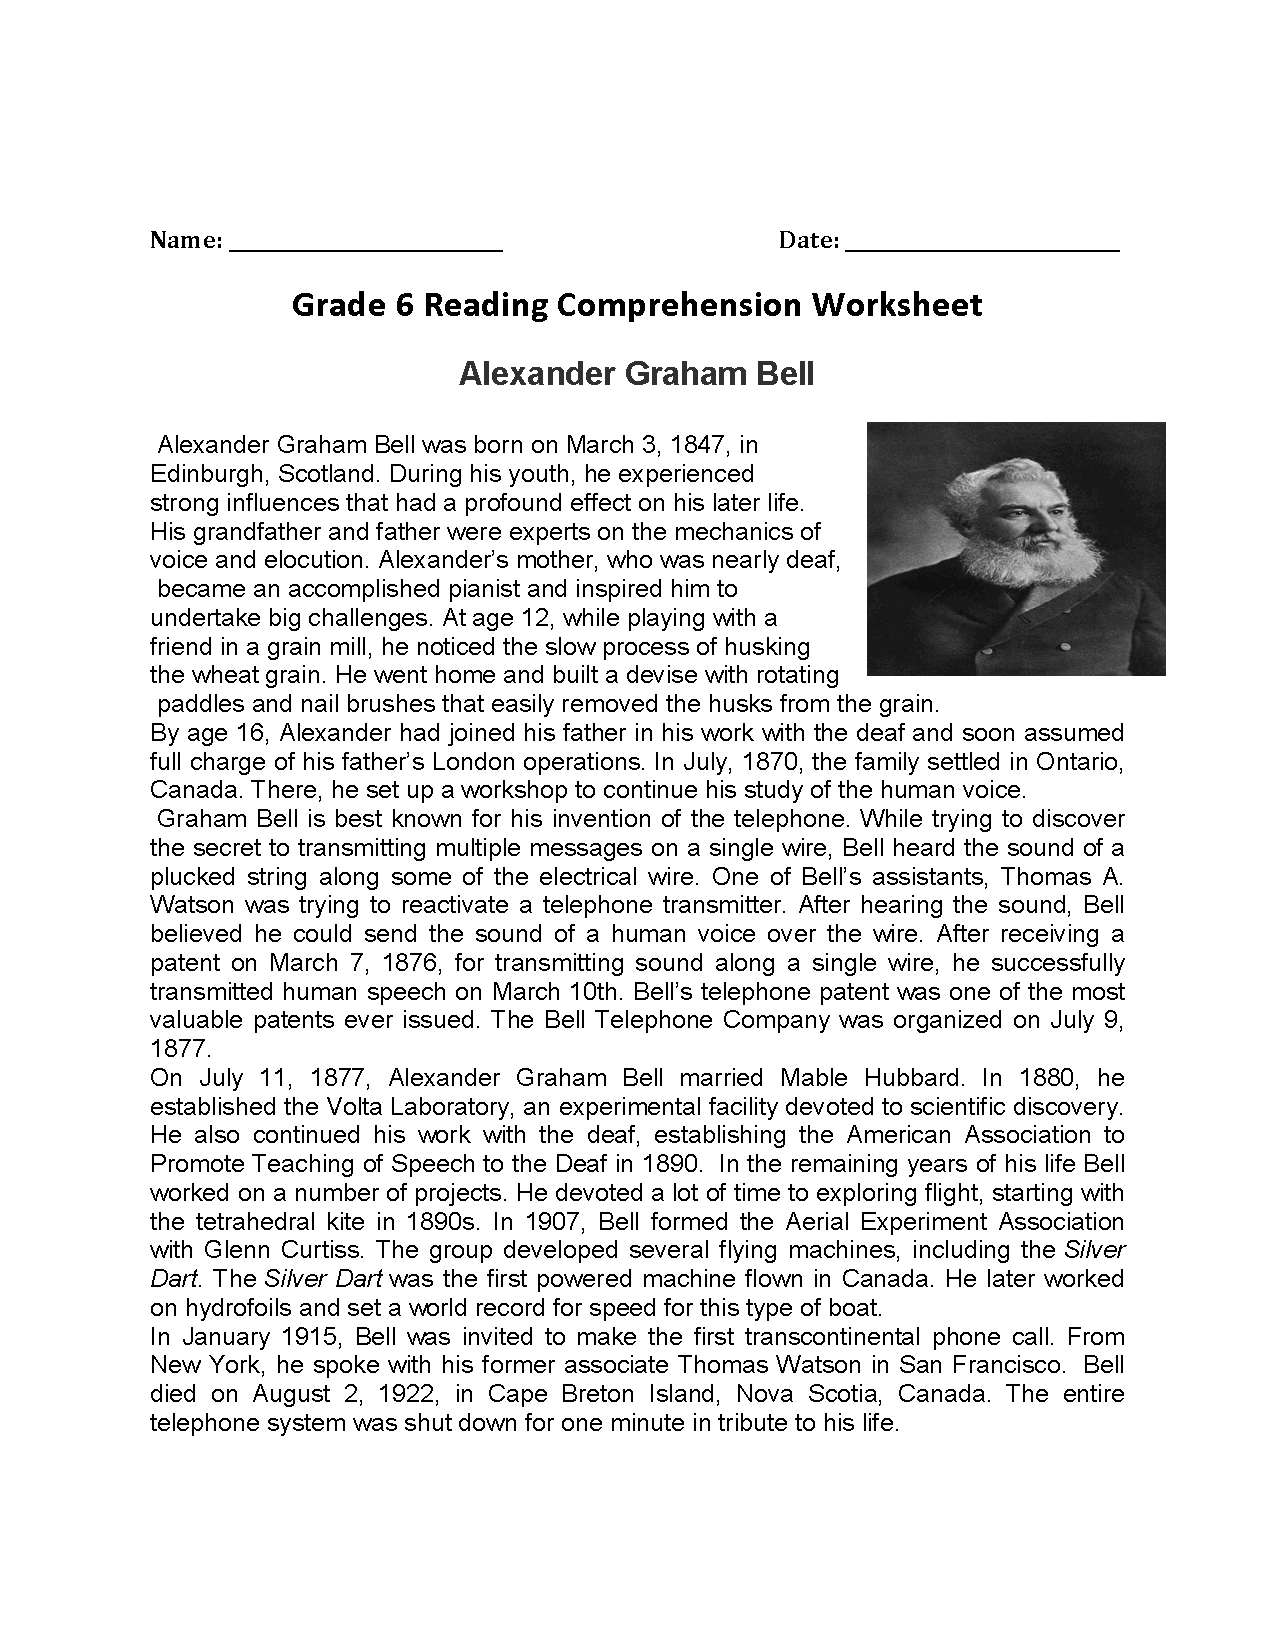 Sixth grade reading comprehension worksheets free printable